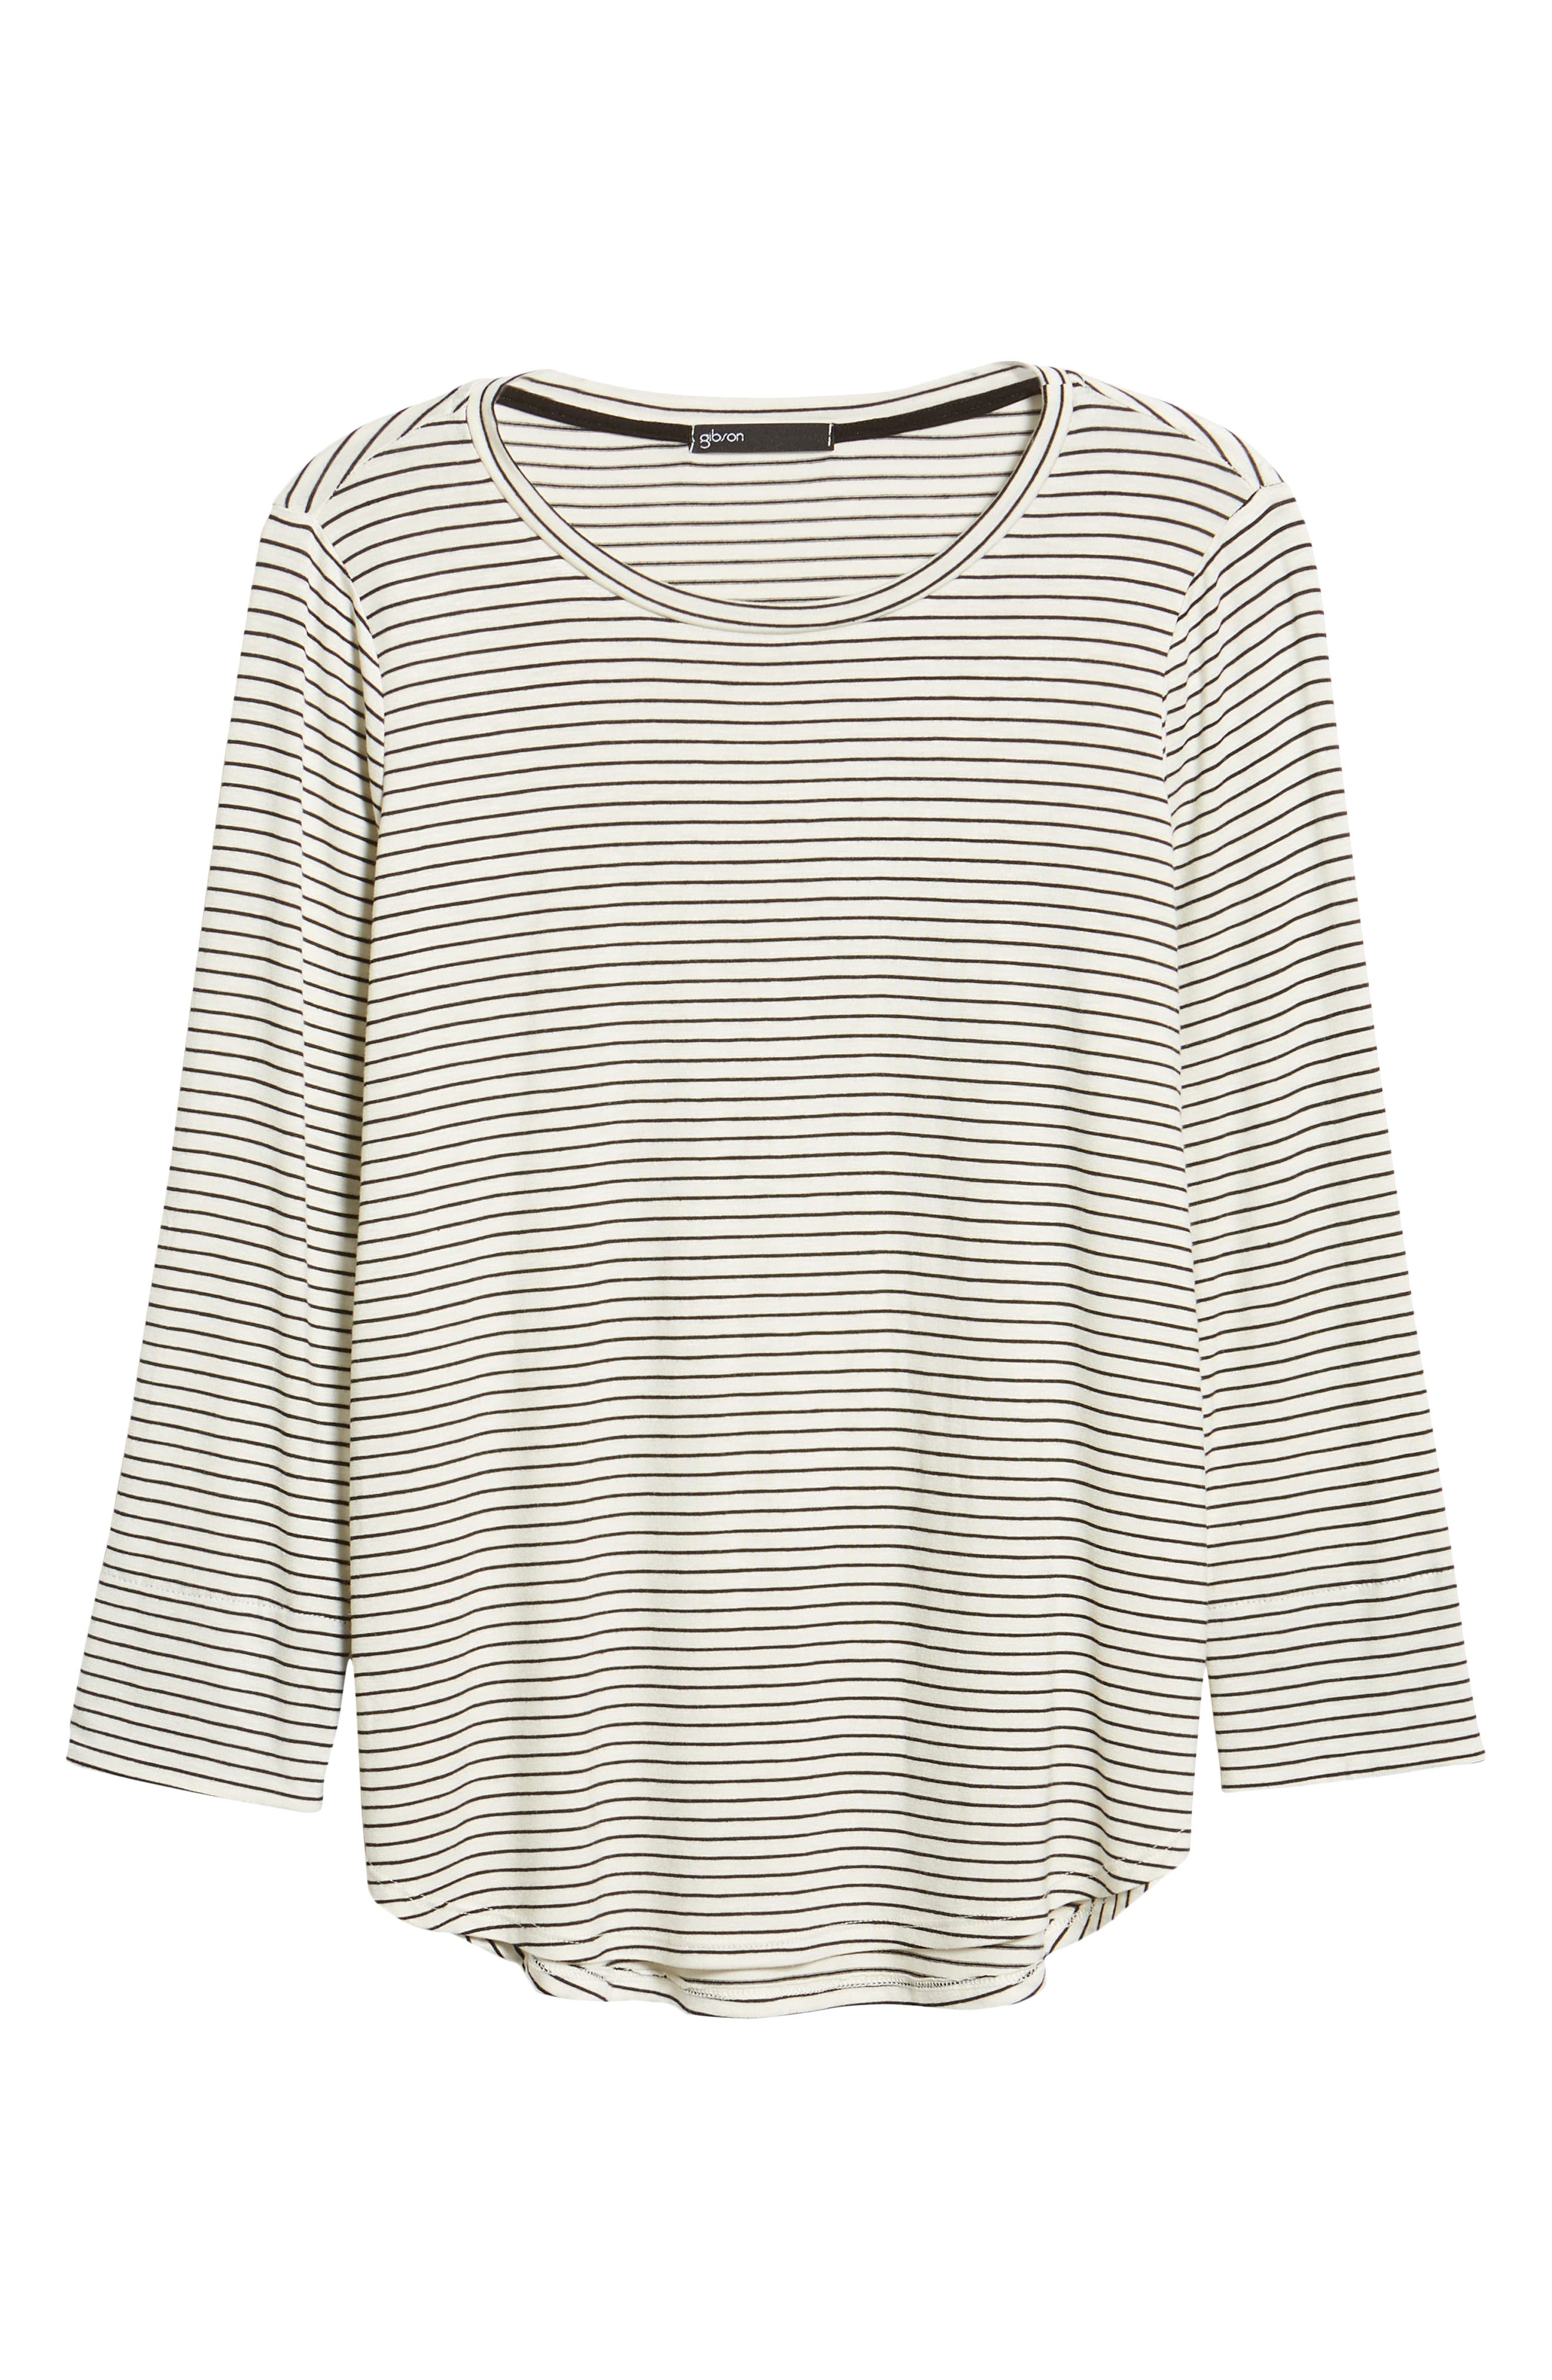 GIBSON, x Living in Yellow Alice Stripe Jersey Top, Alternate thumbnail 6, color, IVORY/ BLACK